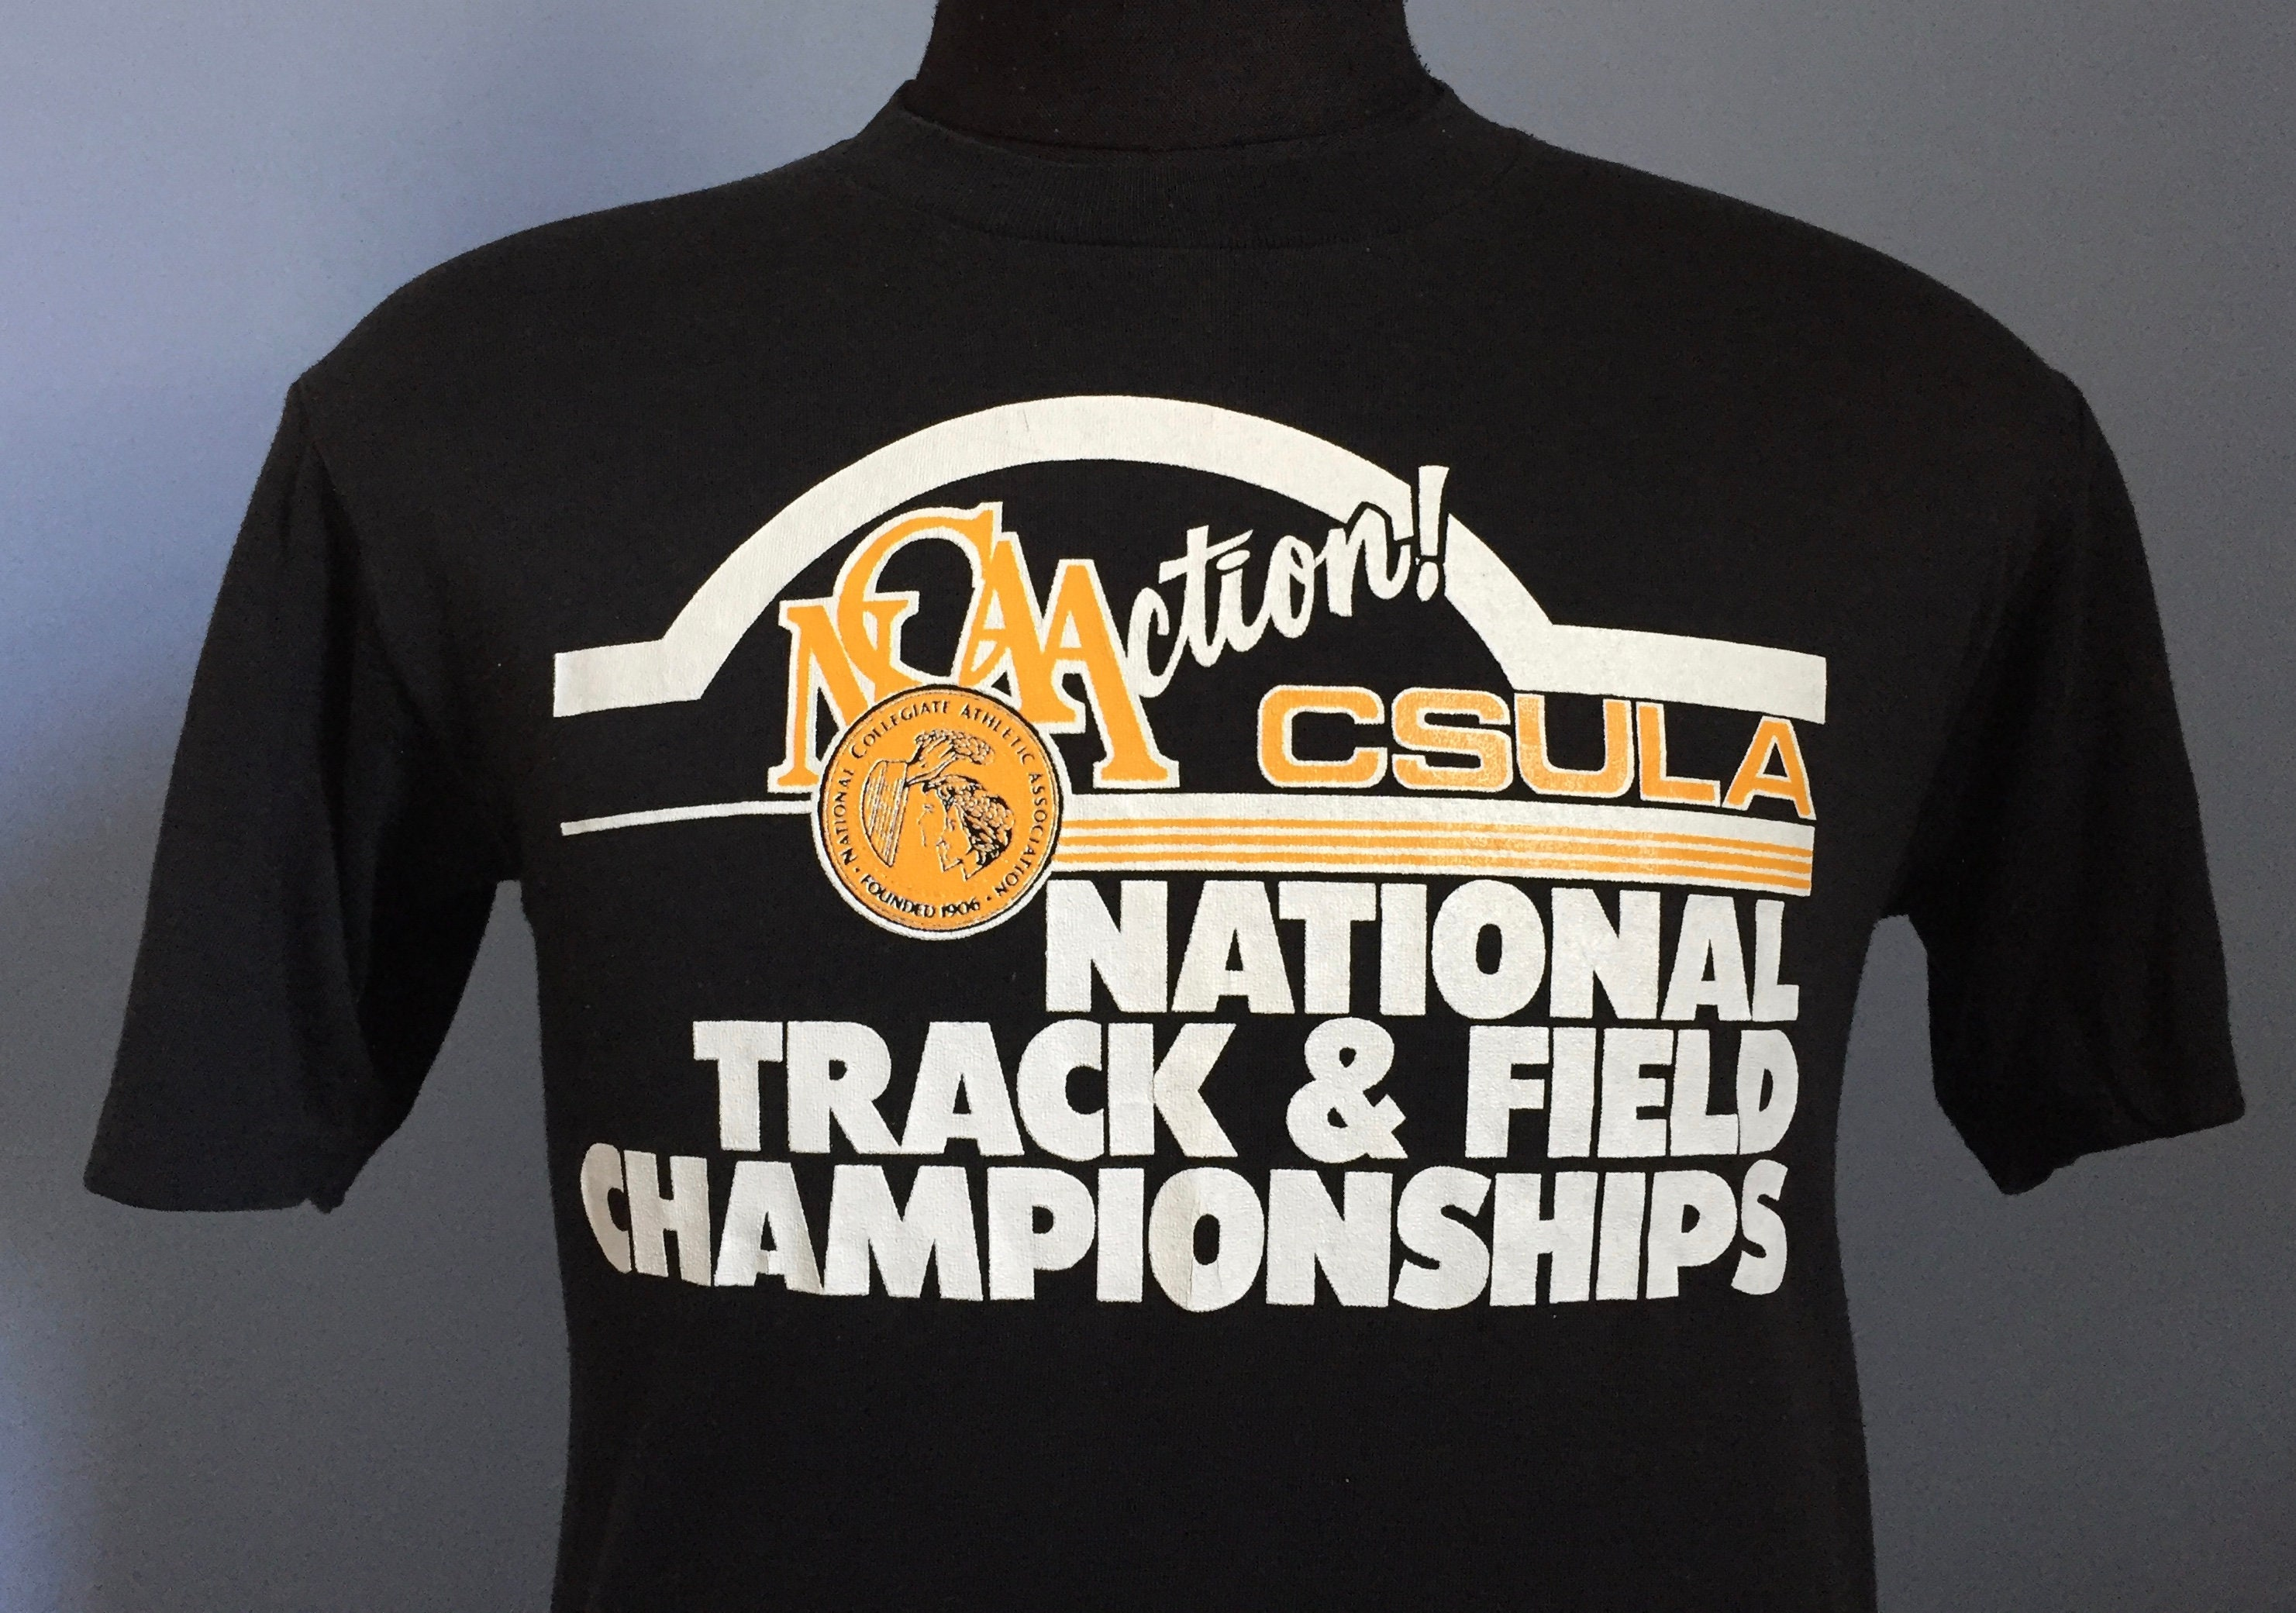 80s Tops, Shirts, T-shirts, Blouse   90s T-shirts 80S Vintage Ncaa Action Csula National Track  Field Championships Cal State Los Angeles University College T-Shirt - Small $36.50 AT vintagedancer.com